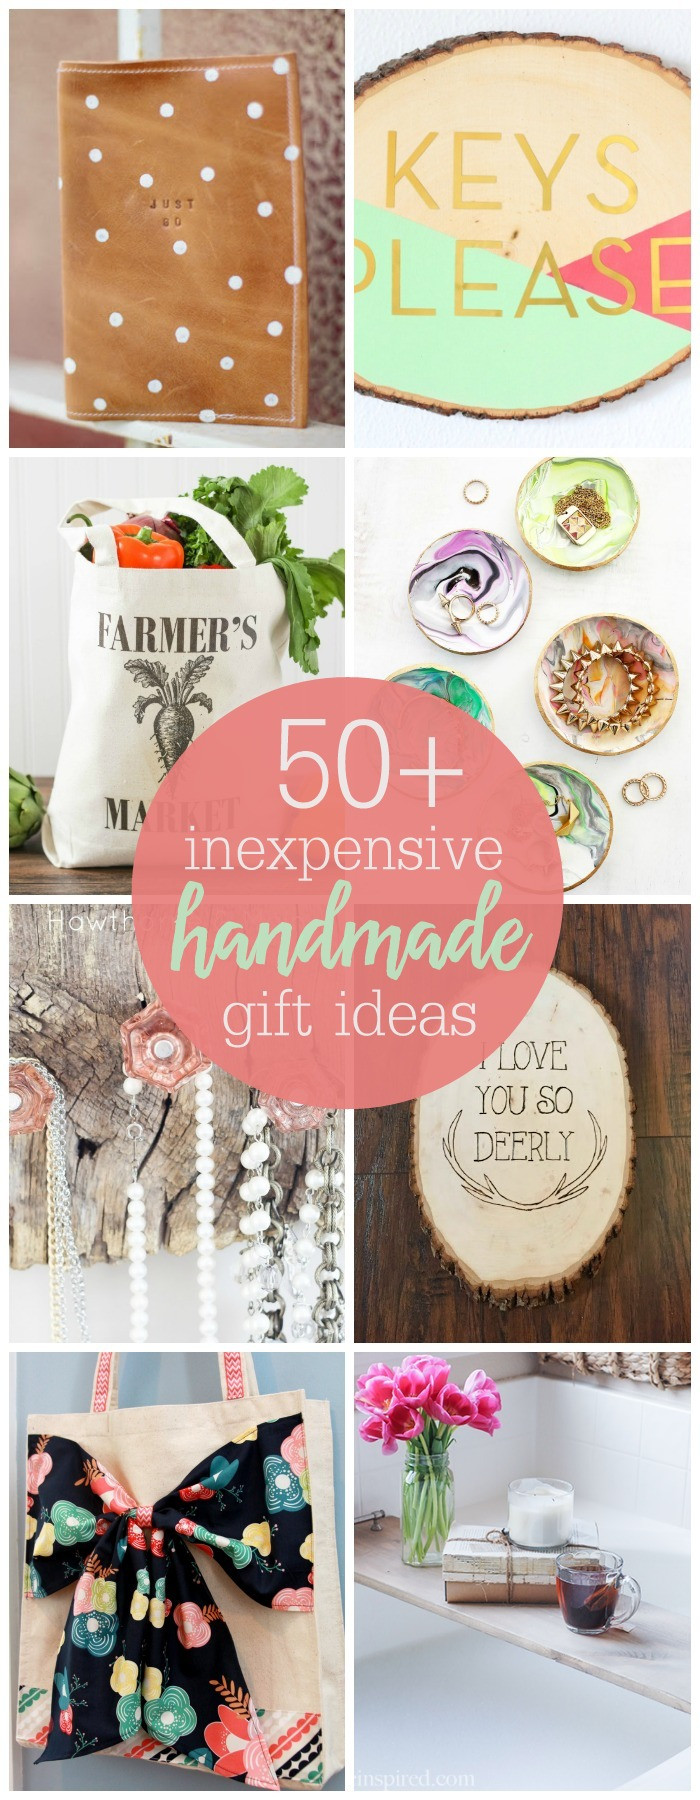 Best ideas about Diy Gift Ideas For Friends . Save or Pin Inexpensive Handmade Gift Ideas Now.